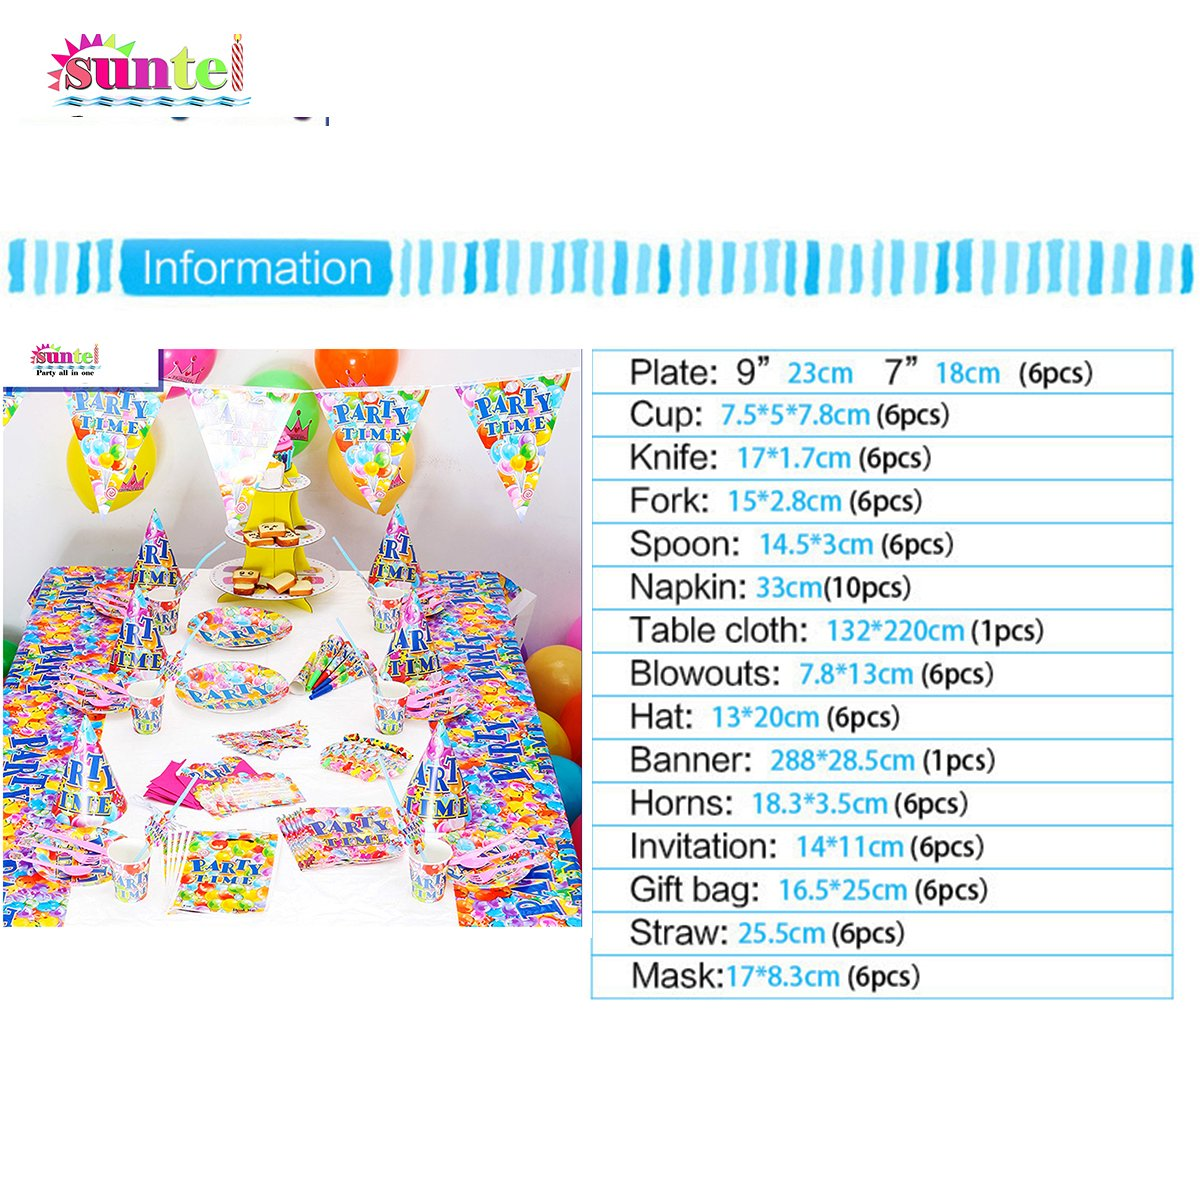 Amazon.com: Suntel Party Time 16 Different Item 84 Pieces Party ...